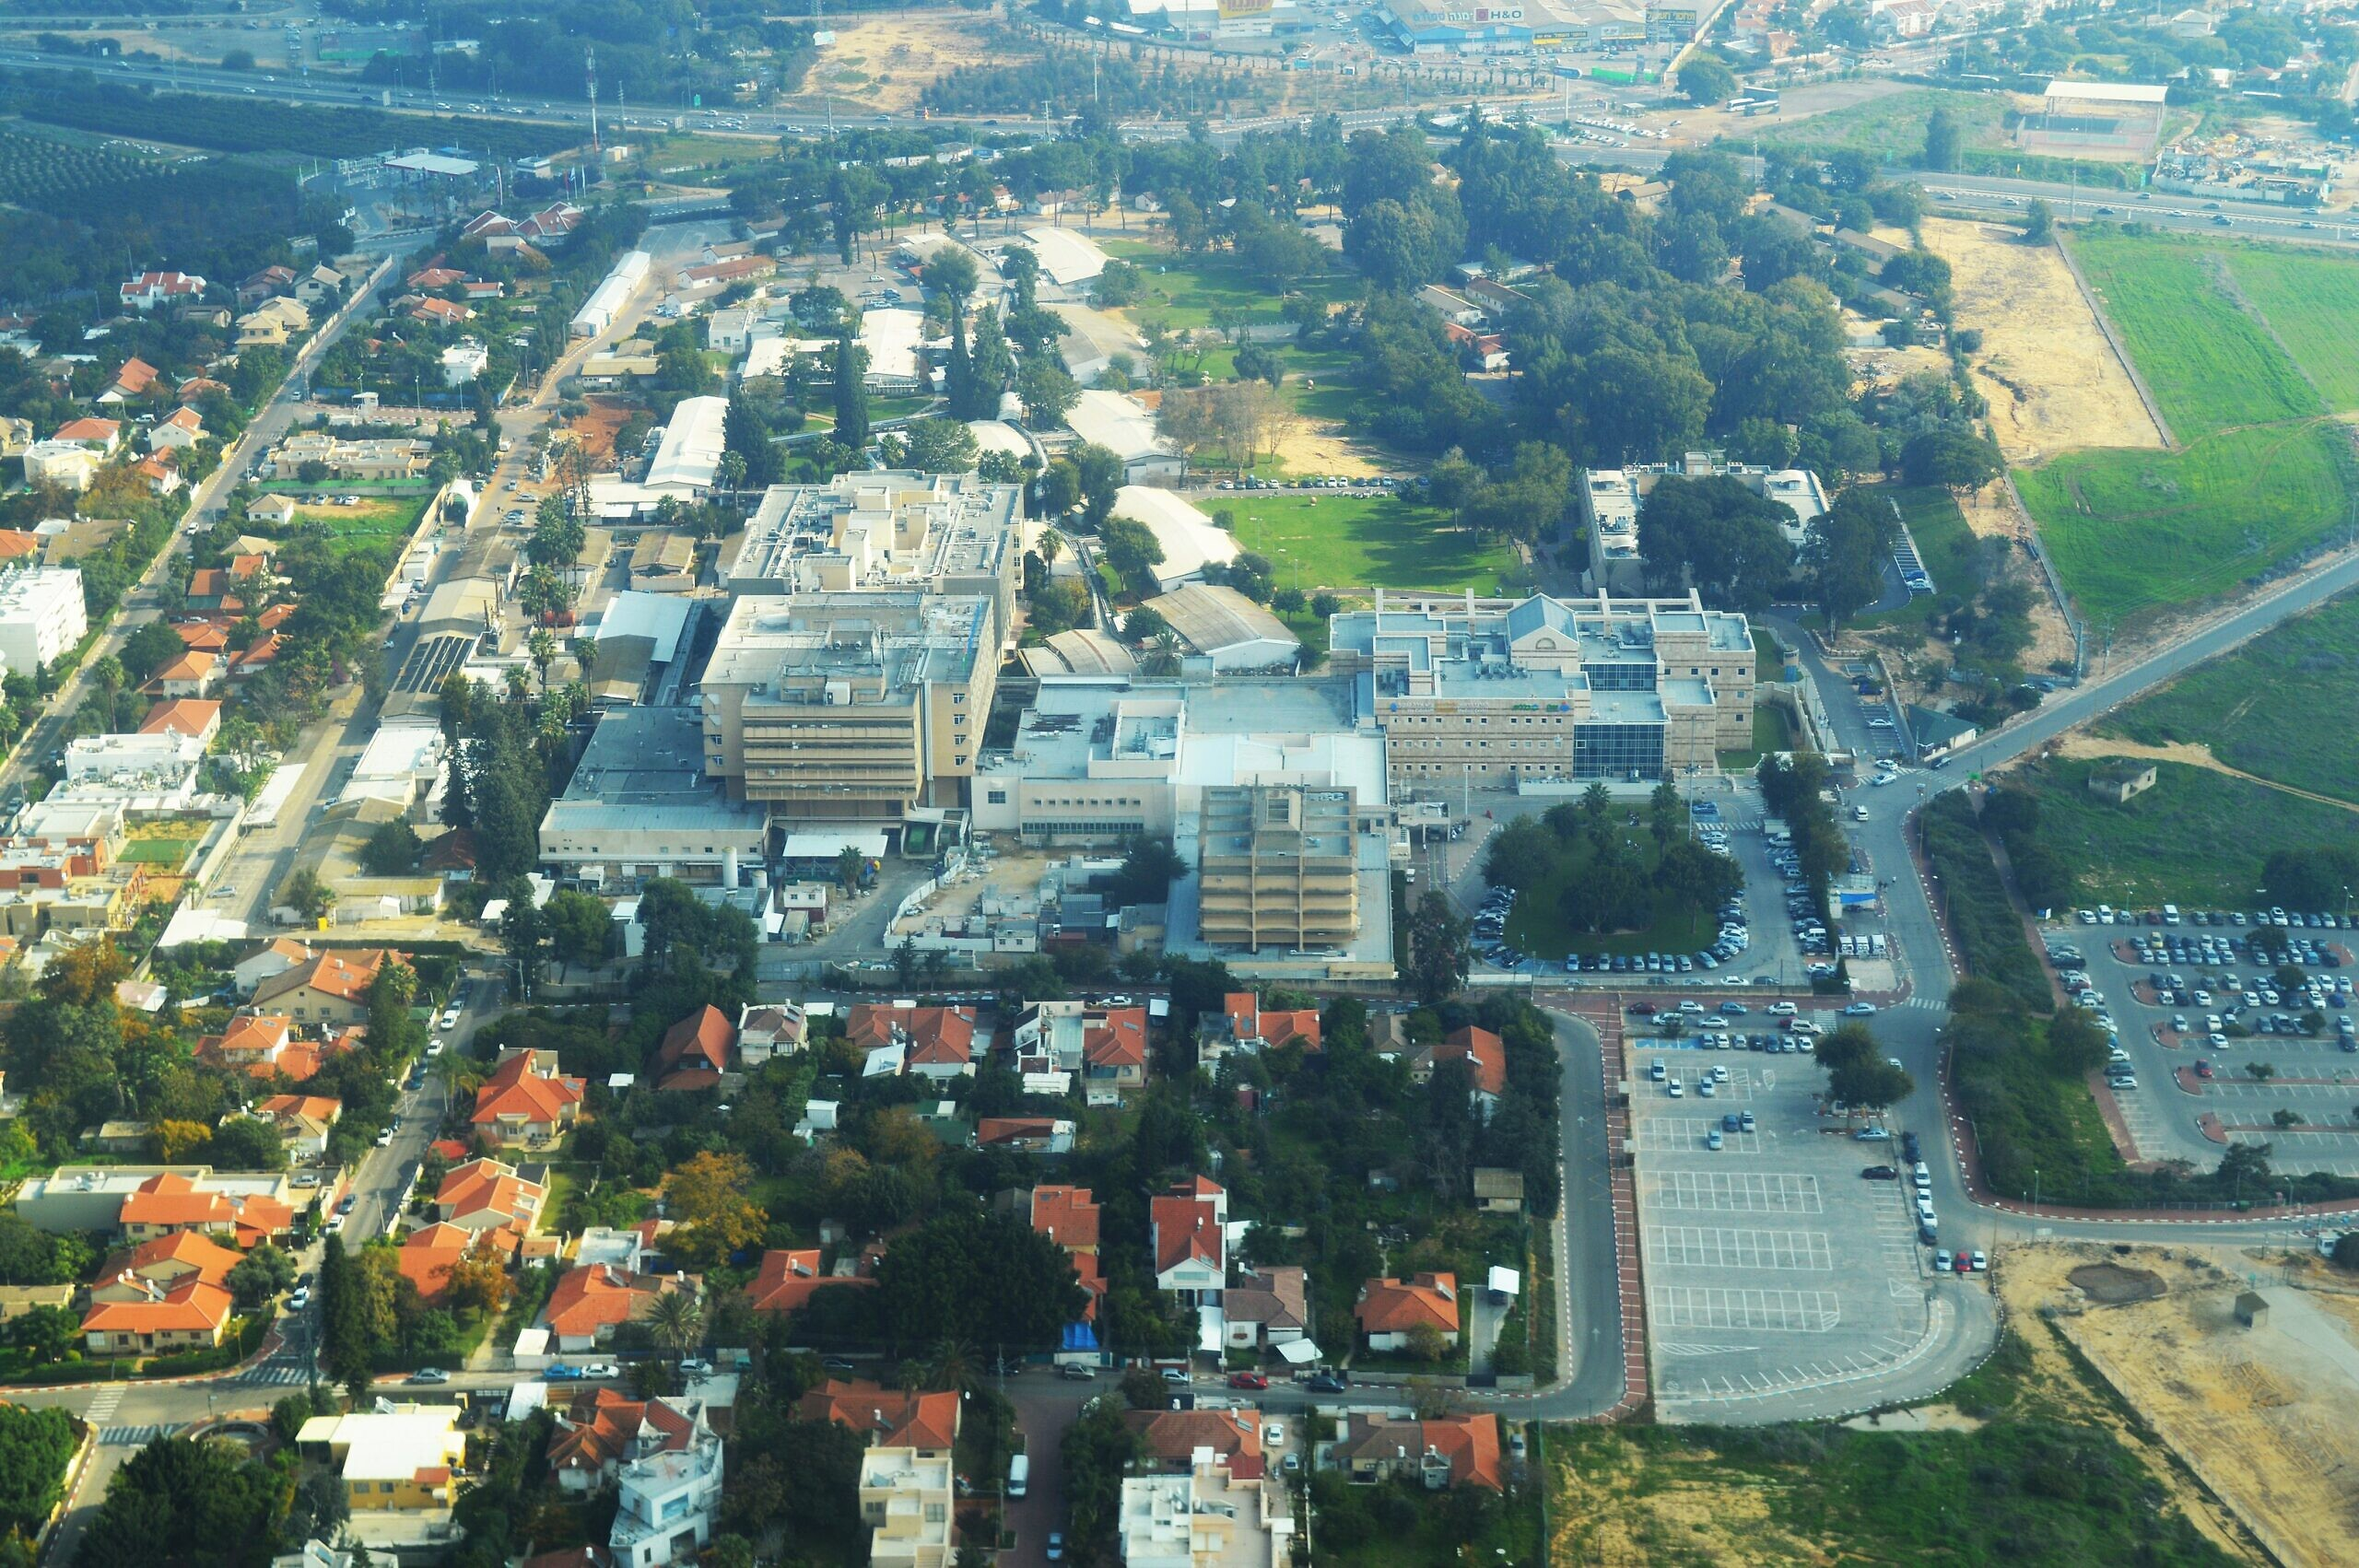 Kaplan Medical Center in Rehovot, Israel. Photo by Amos Meron/Wikimedia Commons.